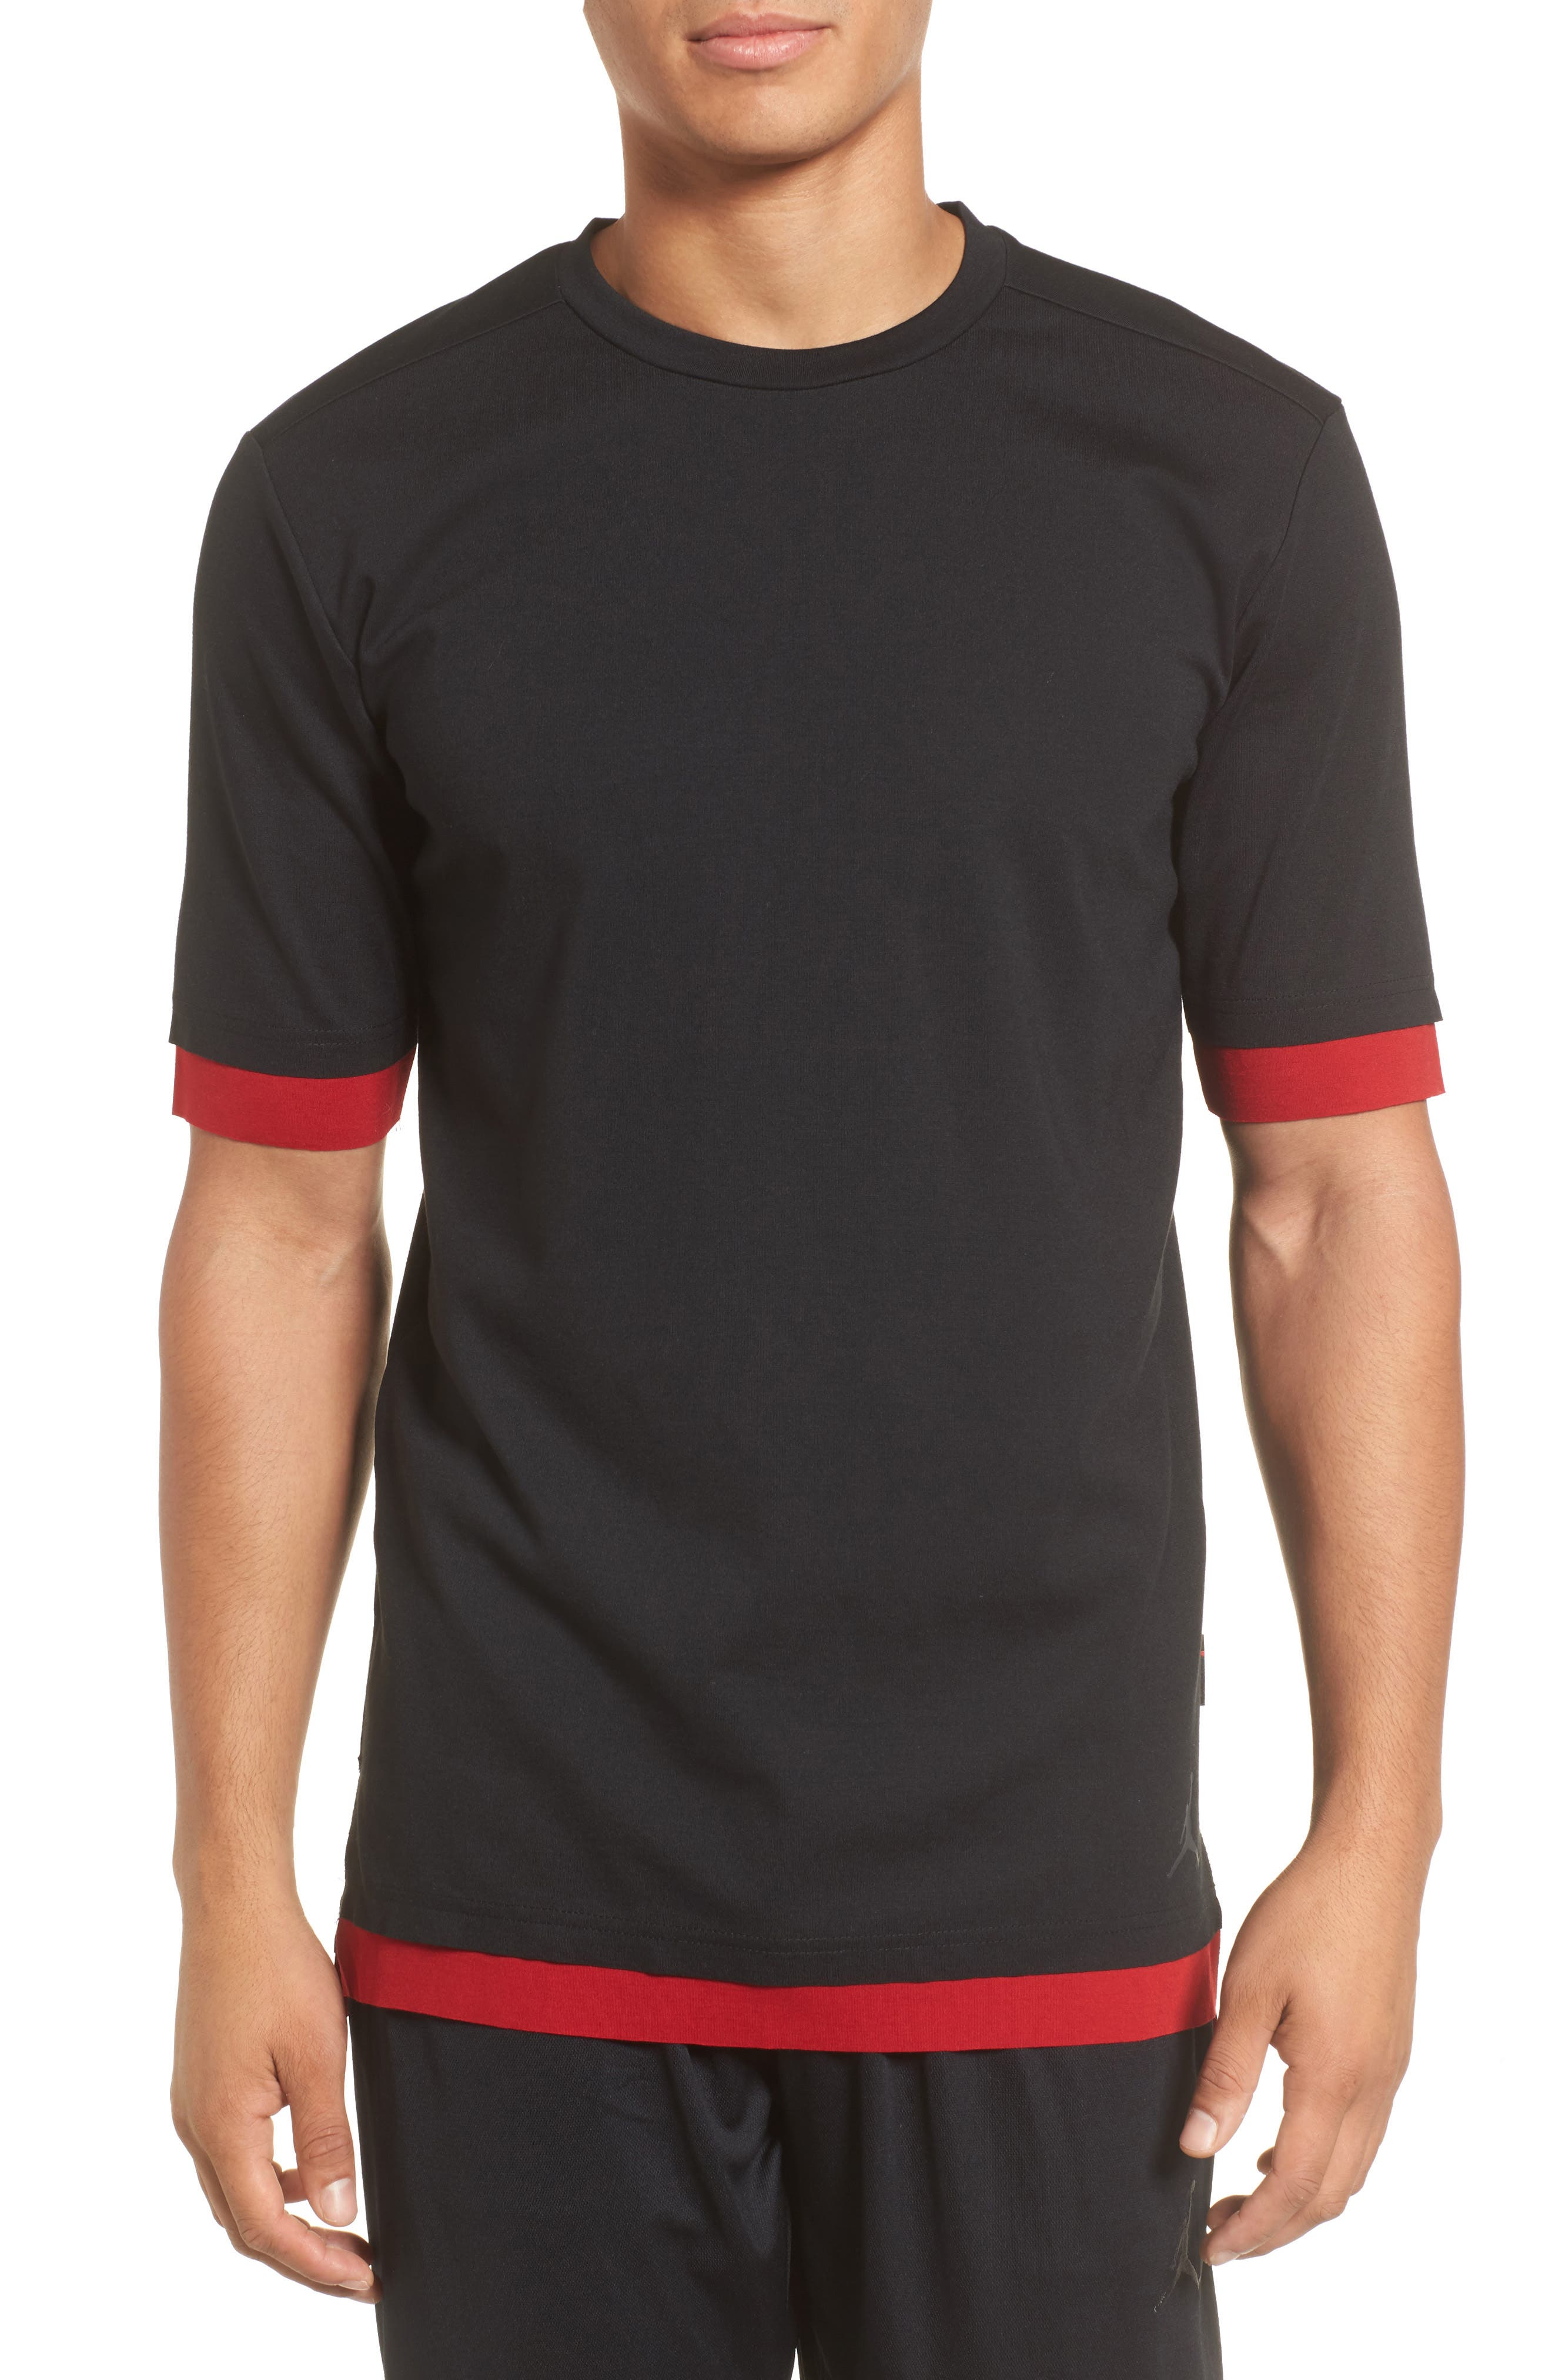 Sportswear Tech T-Shirt,                         Main,                         color, BLACK/ GYM RED/ ANTHRACITE